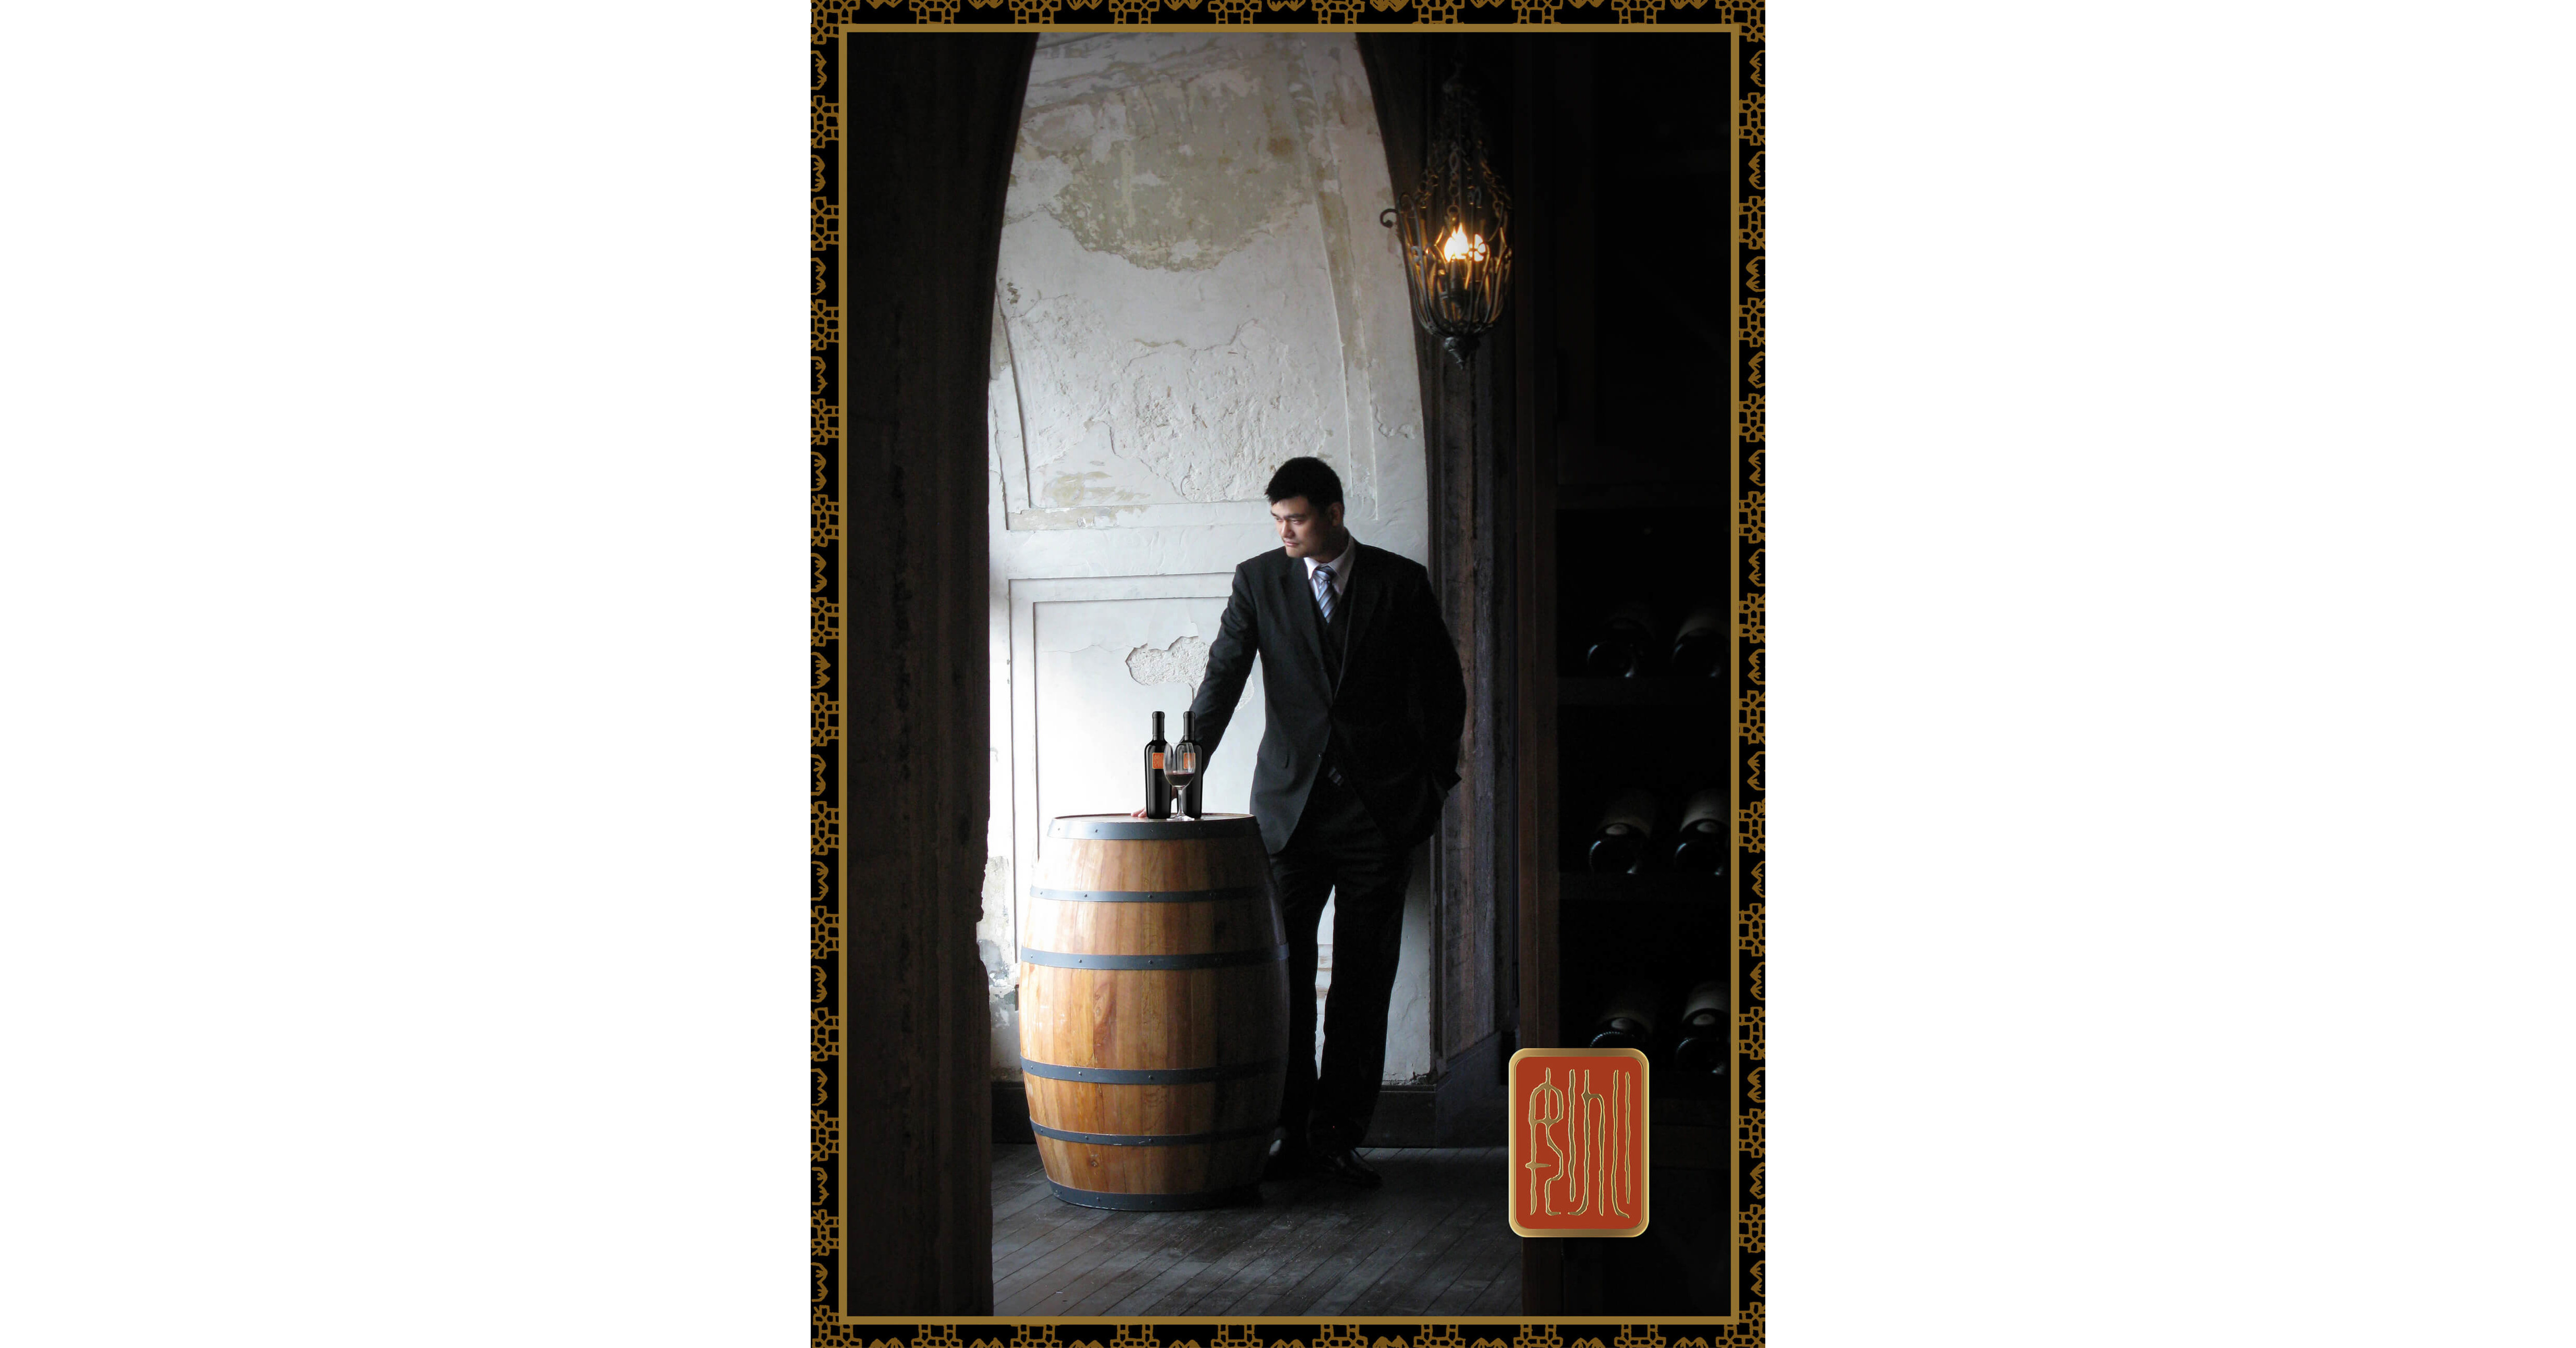 www.prnewswire.com: Yao Family Wines Offers the First Napa Valley Wine Paired with NFT Digital Collectible